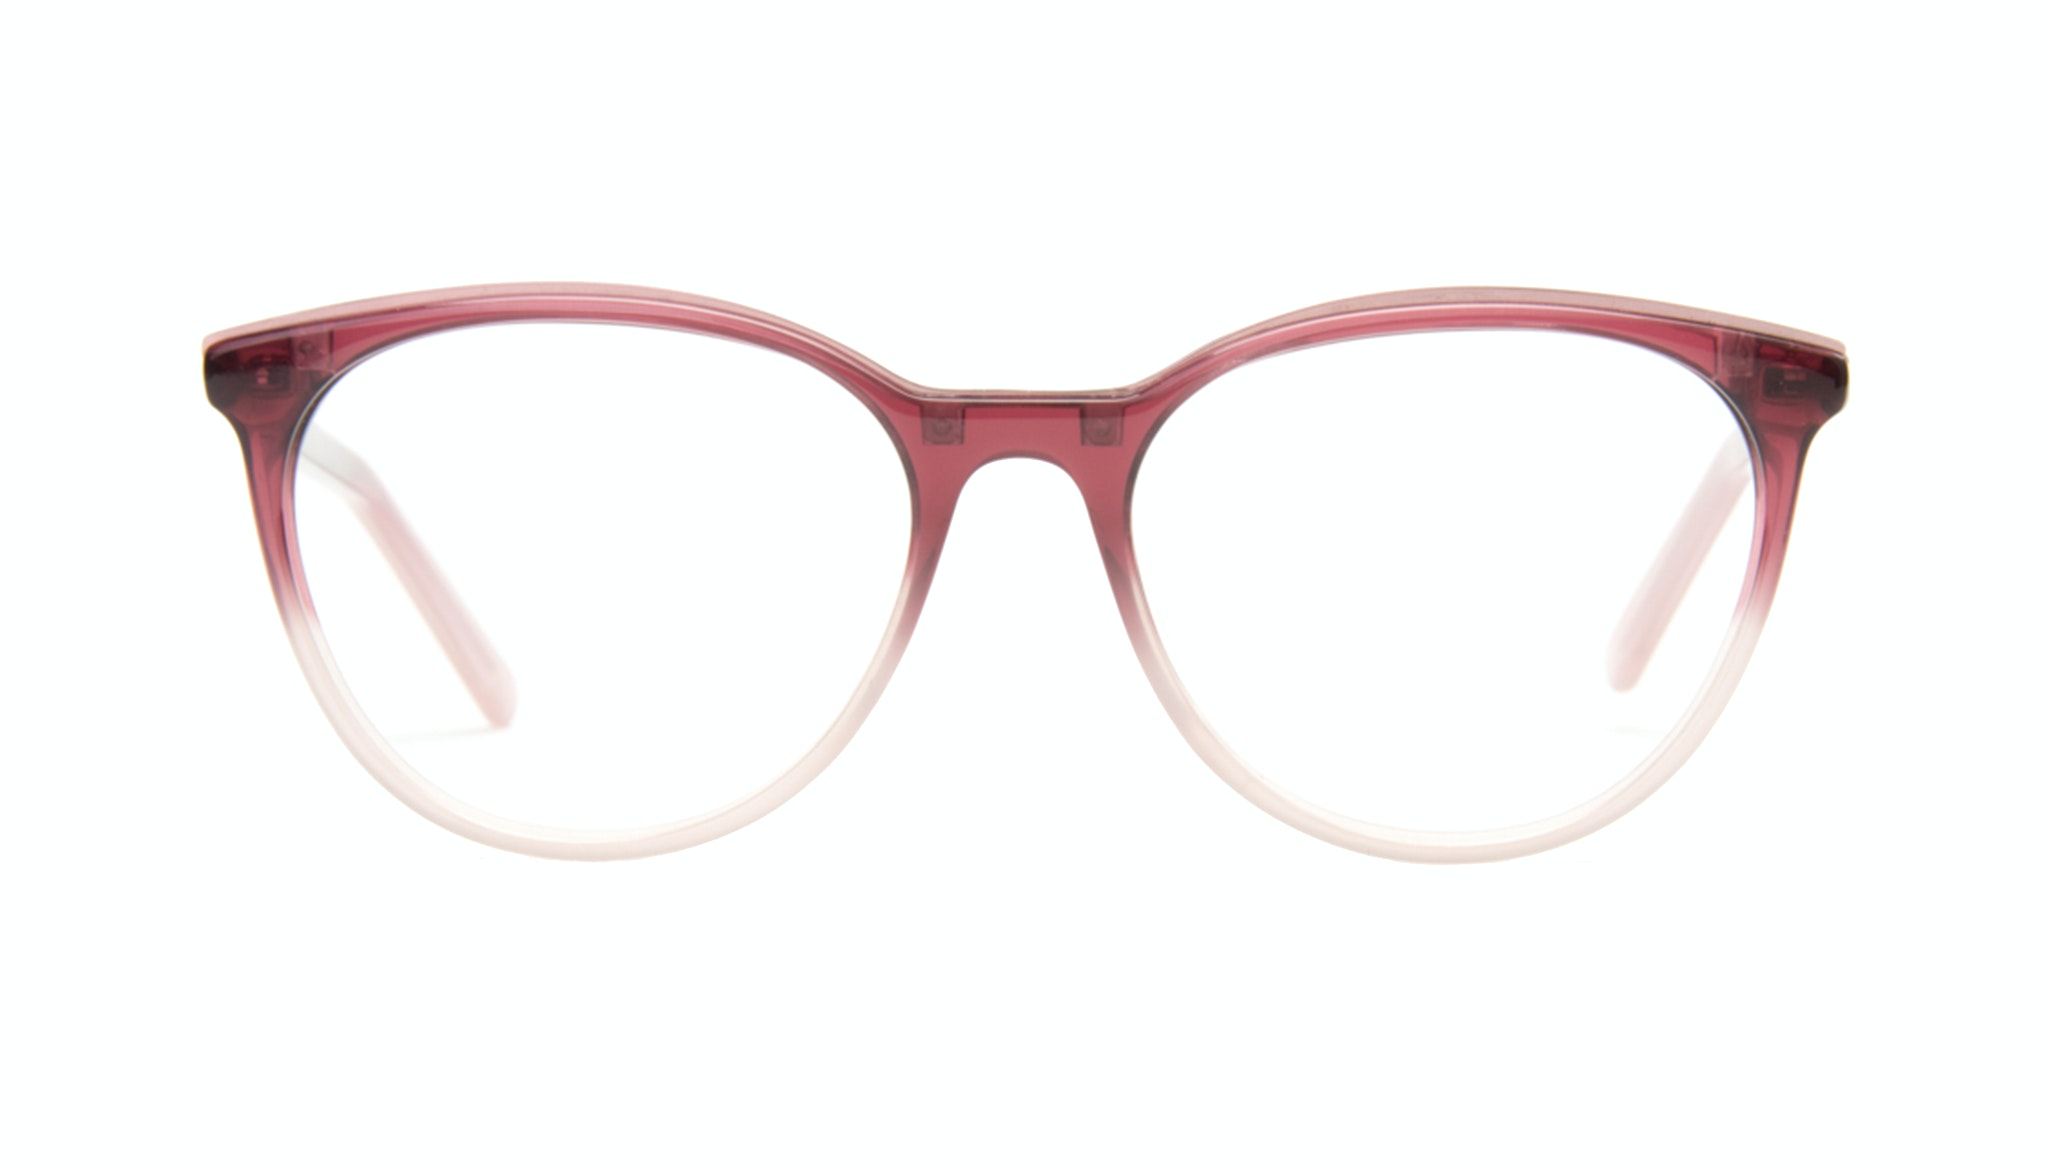 Lunettes tendance Ronde Optiques Femmes Gypsy Berry